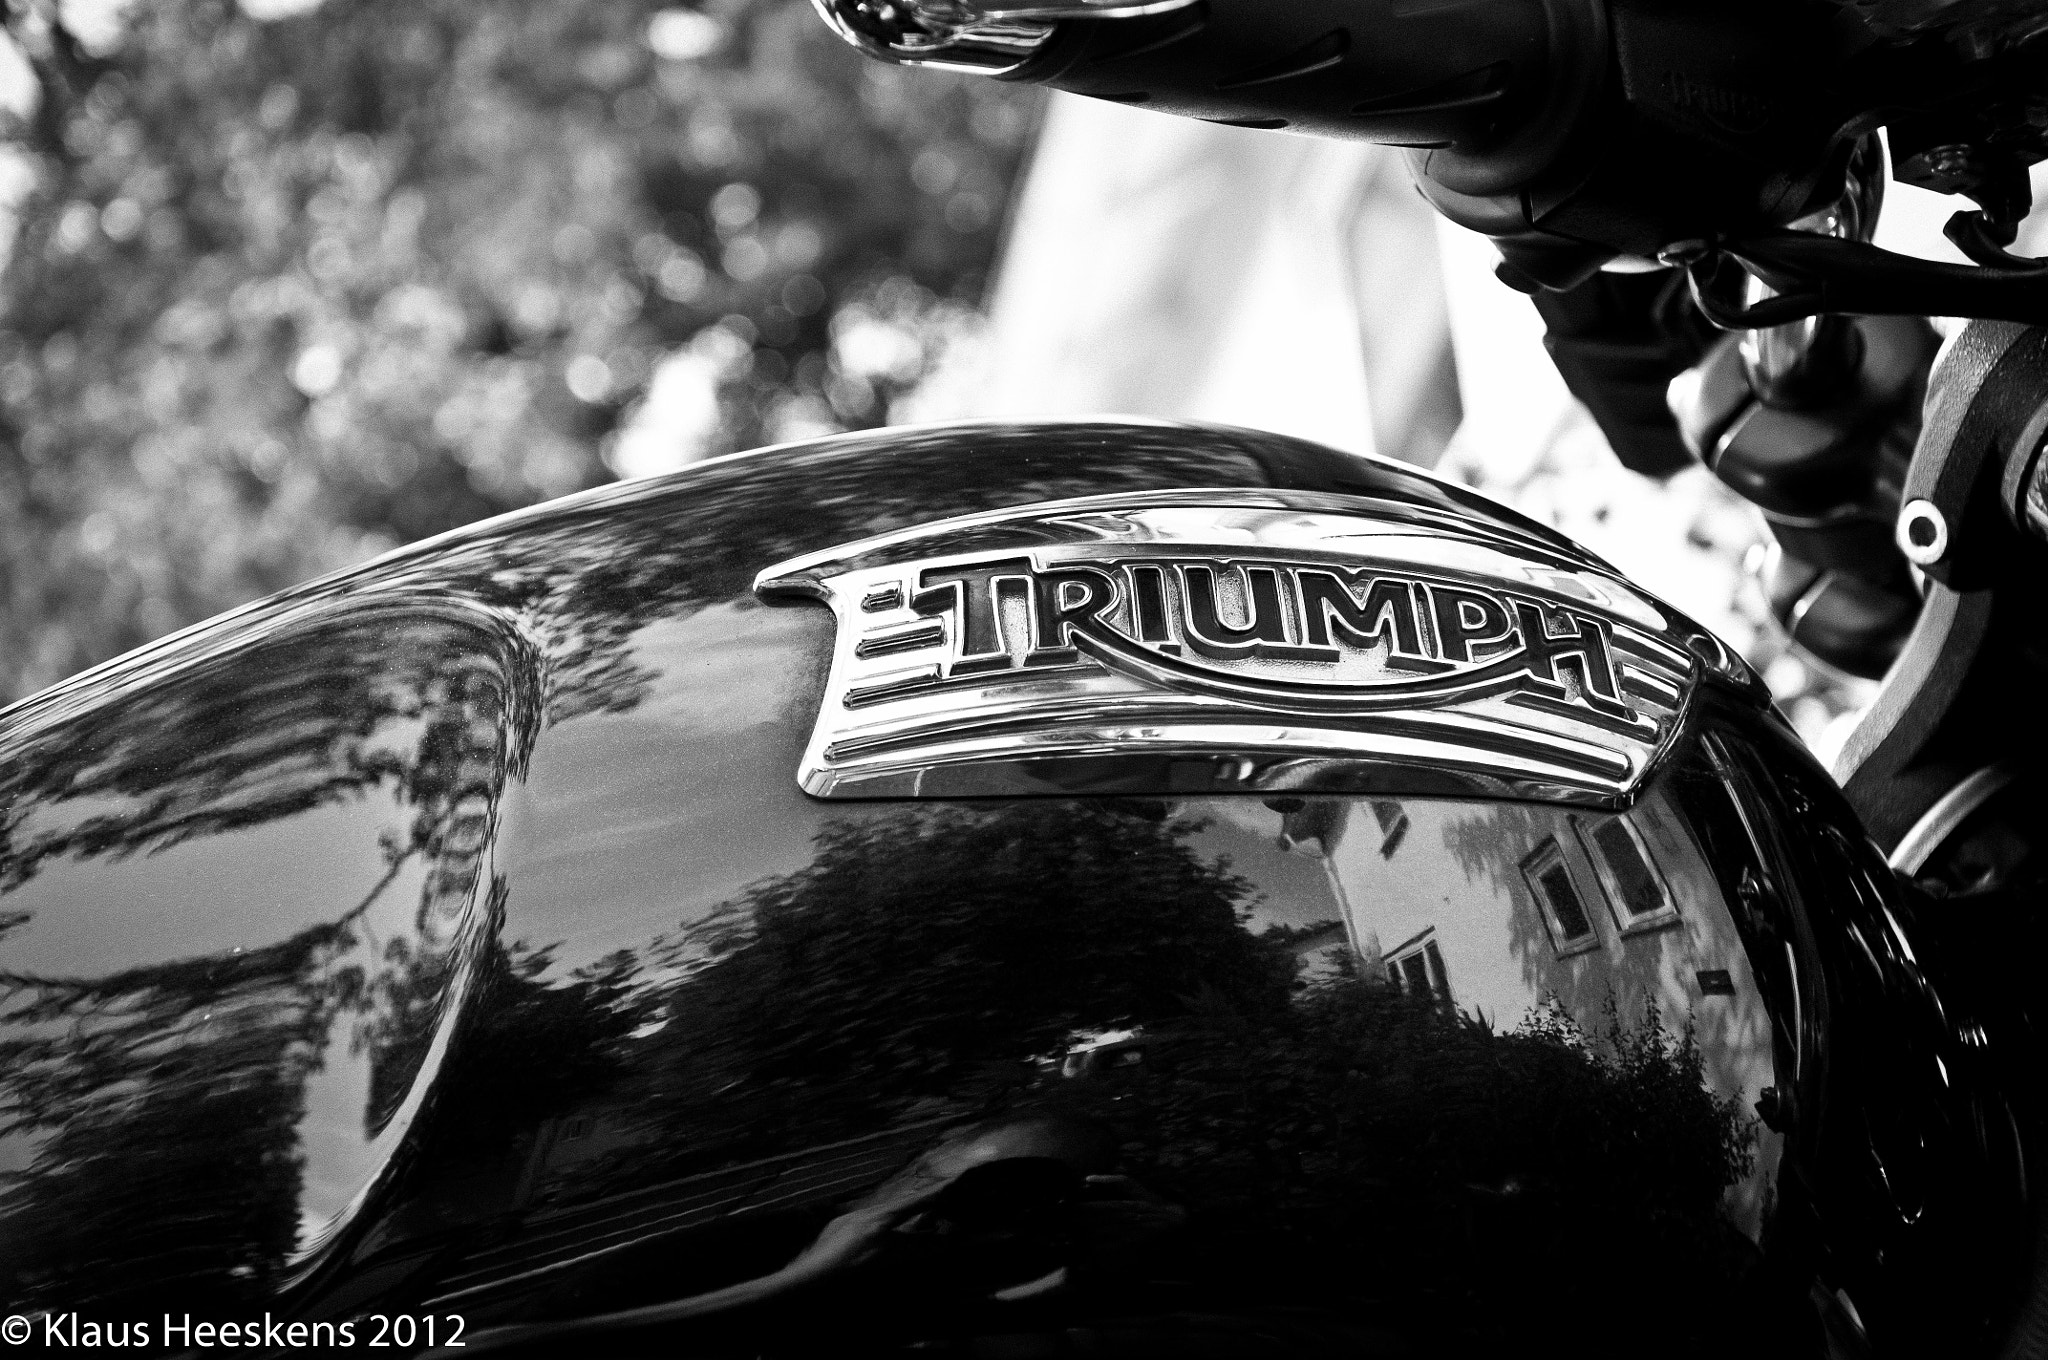 Photograph Triumph 7 by Klaus Heeskens on 500px